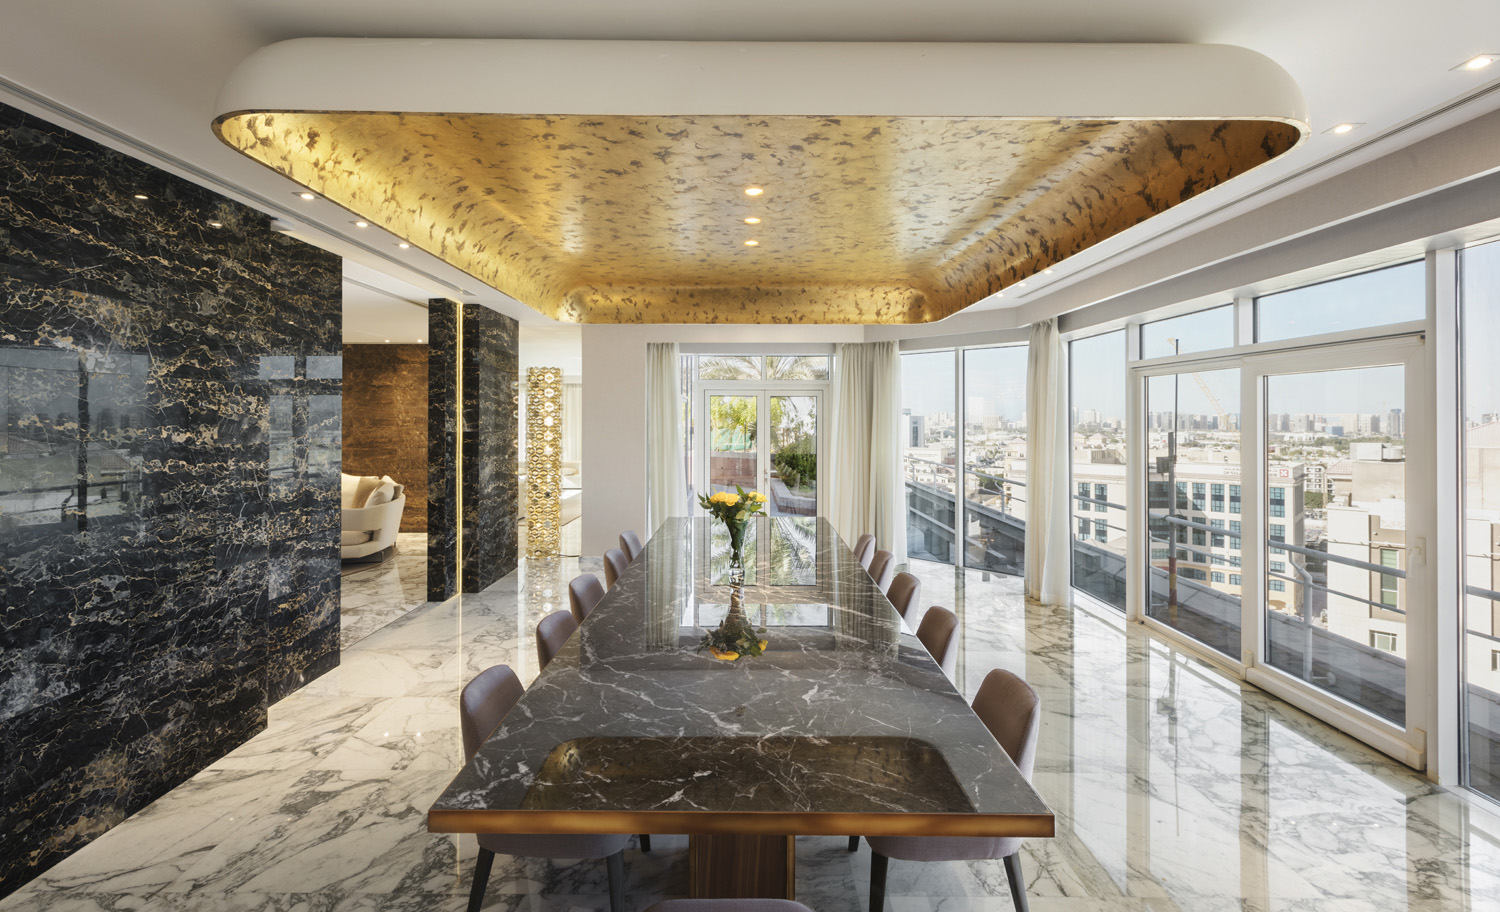 The sculptural ceiling above the dining table is embellished with gold leaf that adorns the architectural element as if it were a precious piece of art. Duccio Grassi conceived the partitions as individual Mohamed Somji